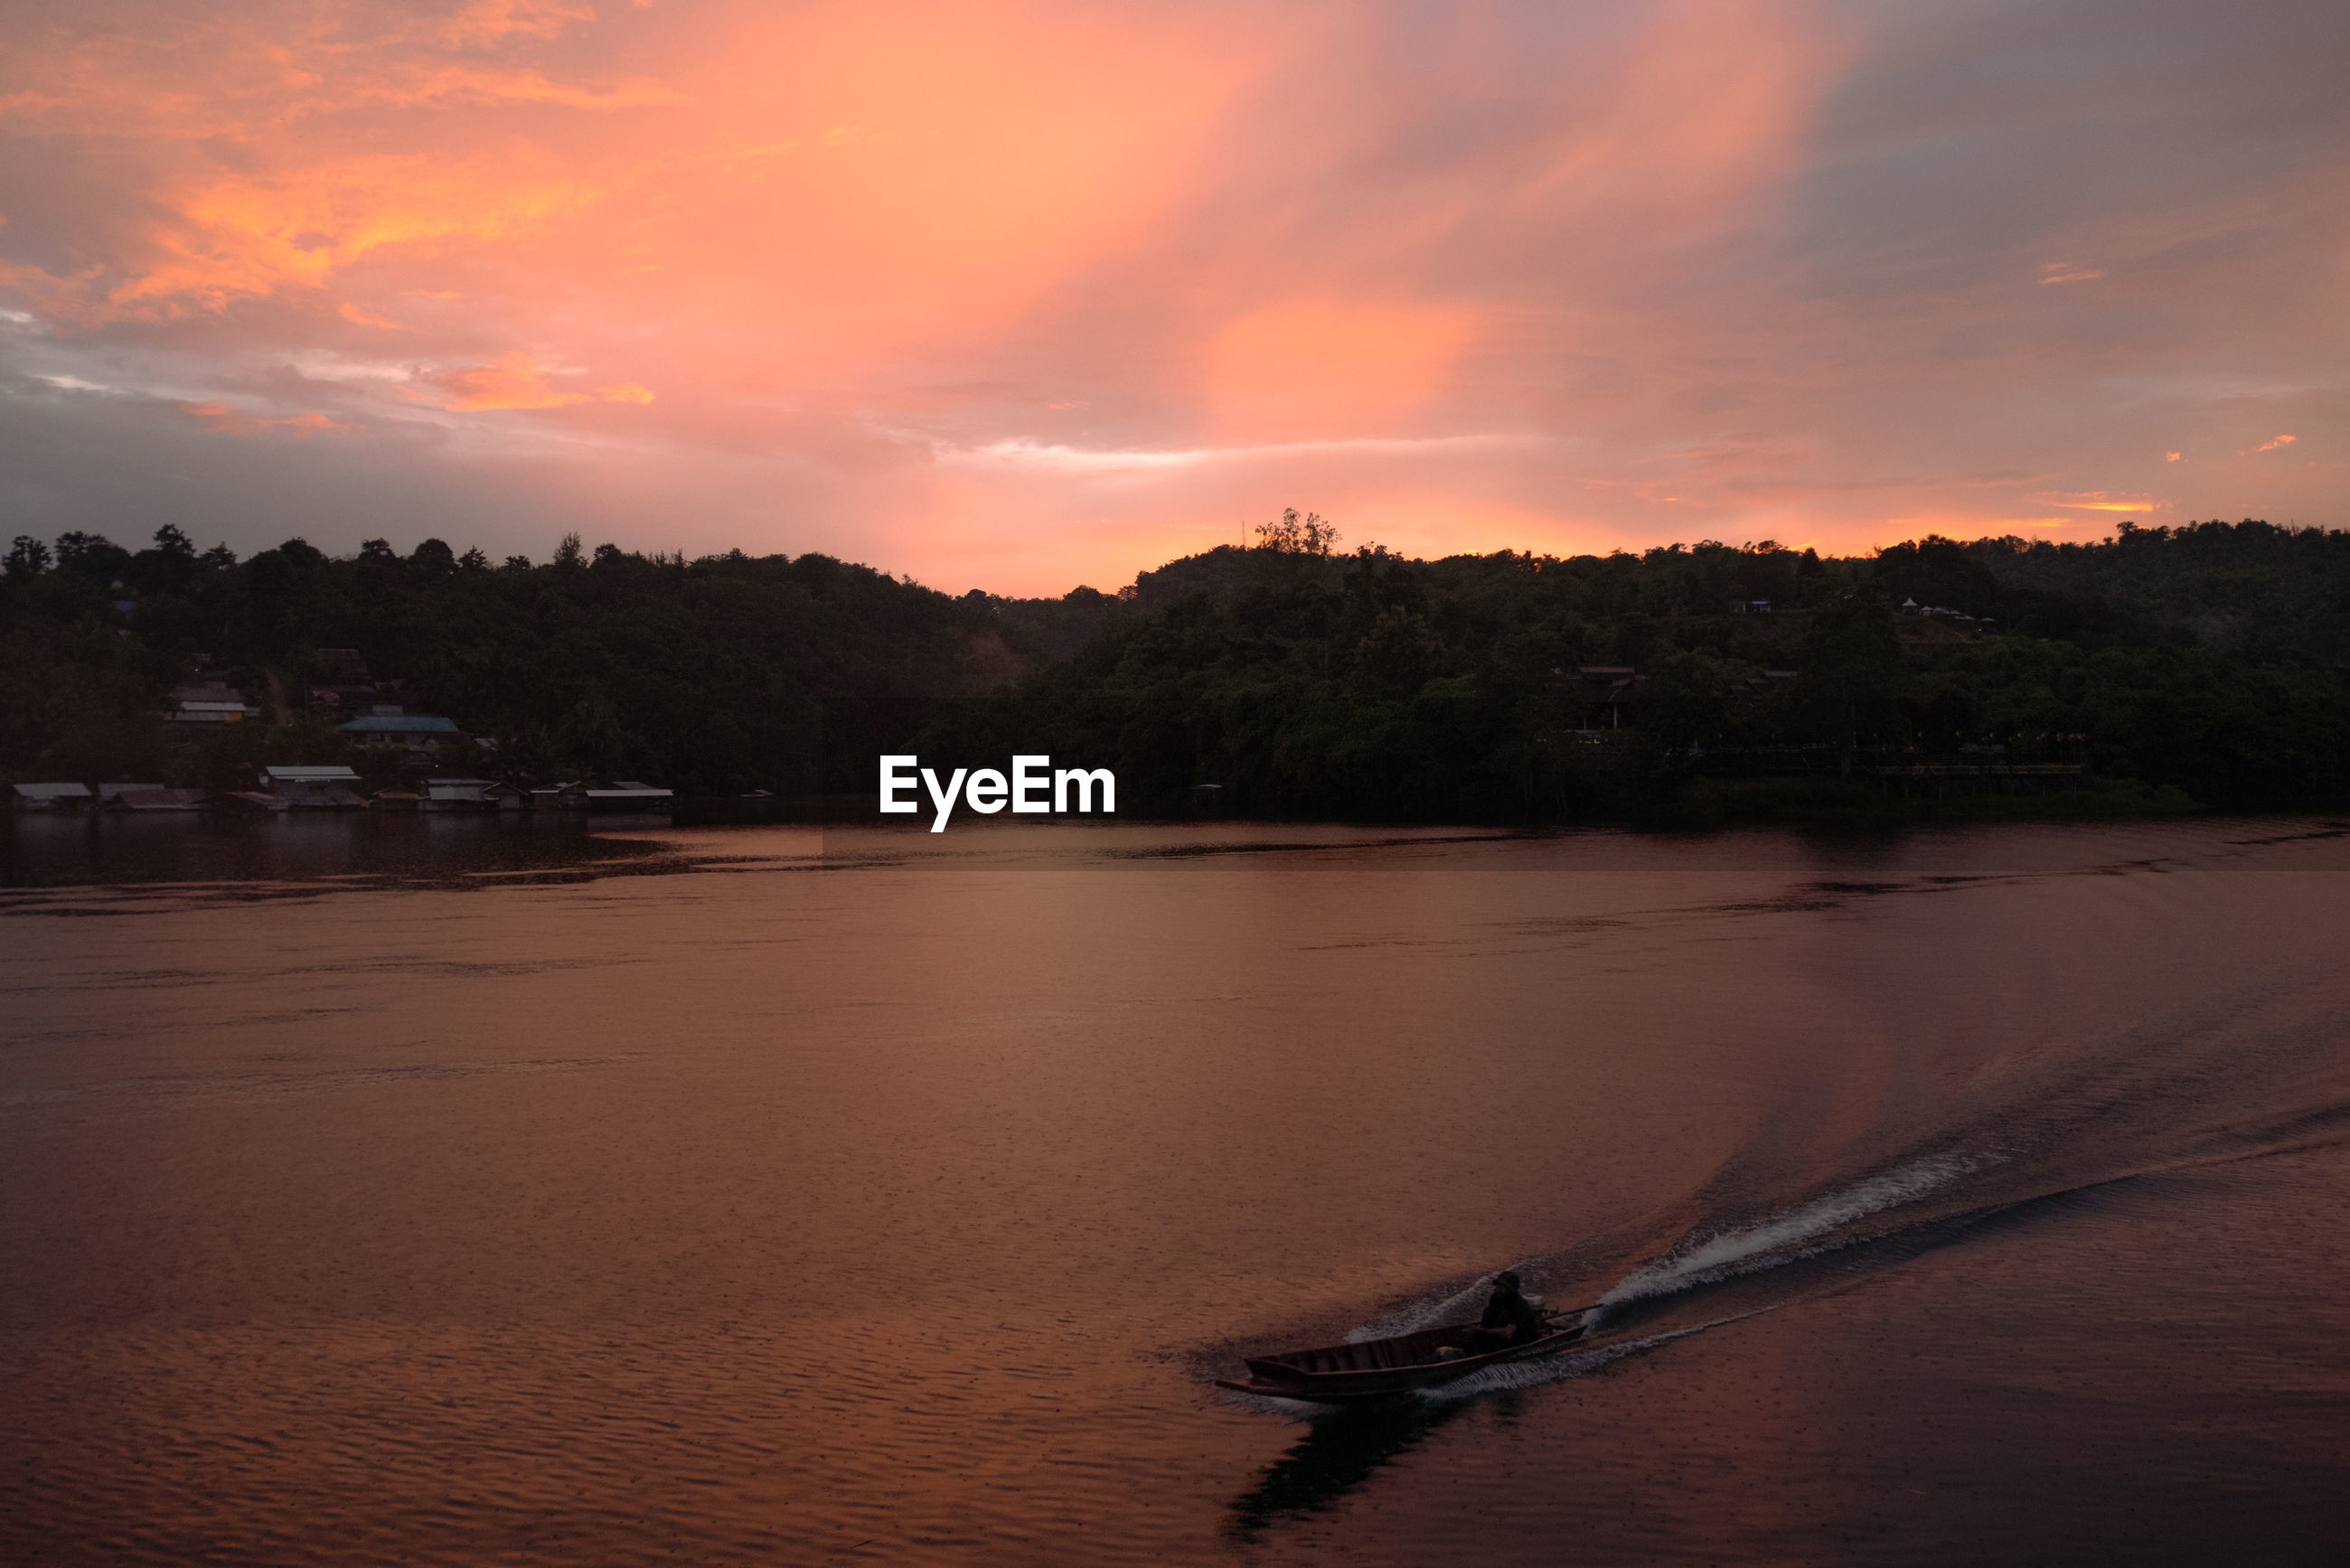 SCENIC VIEW OF RIVER AGAINST ORANGE SKY